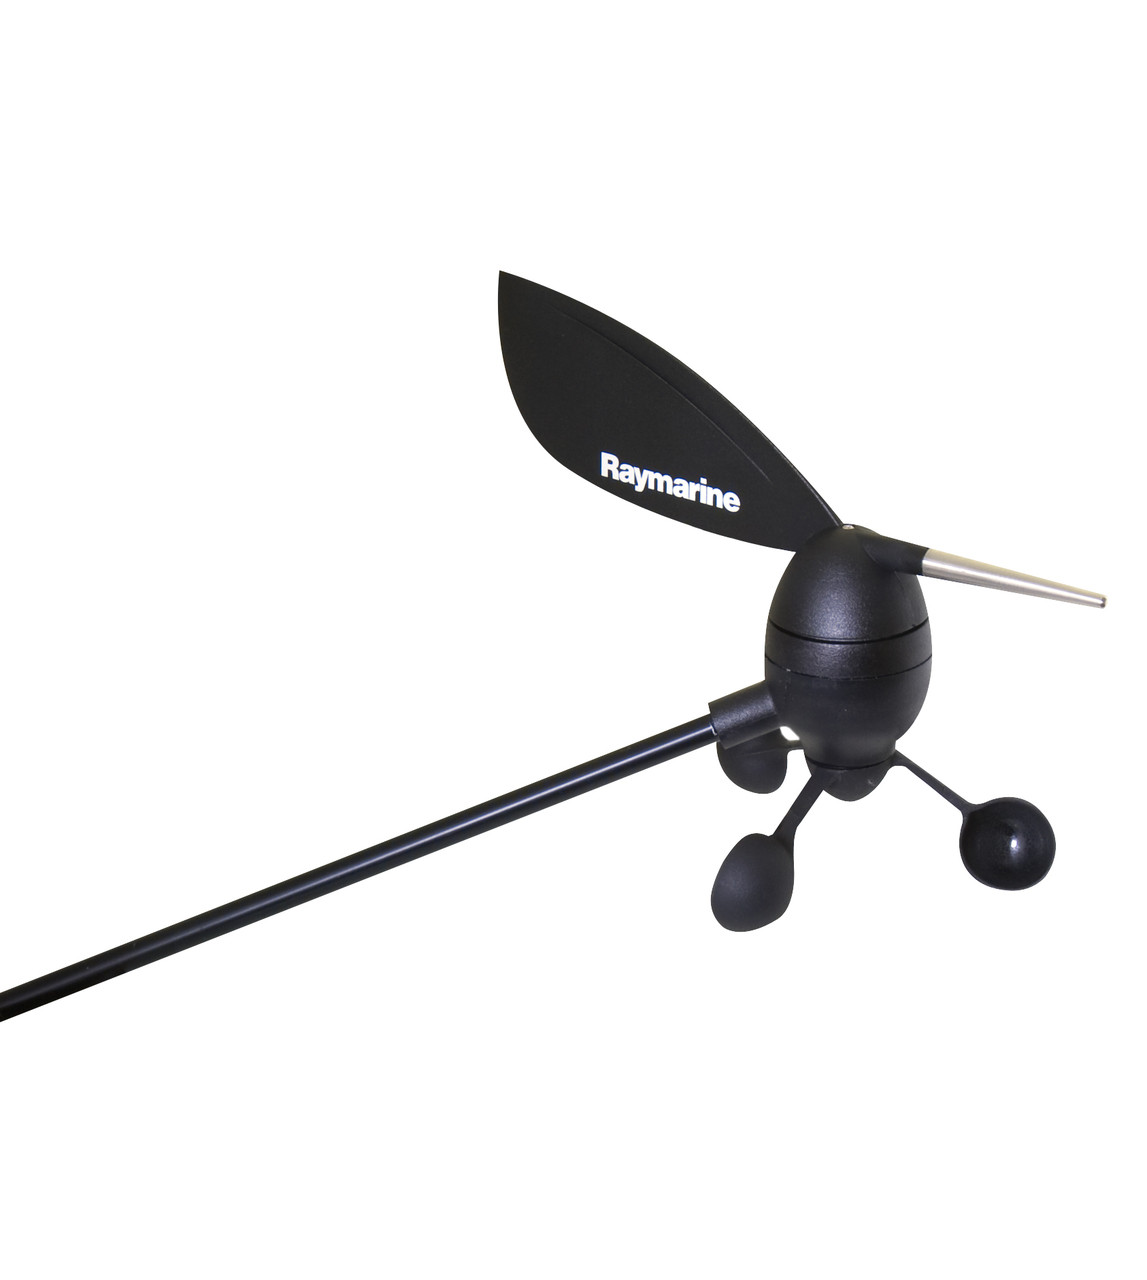 Raymarine Short Arm Vane Transducer